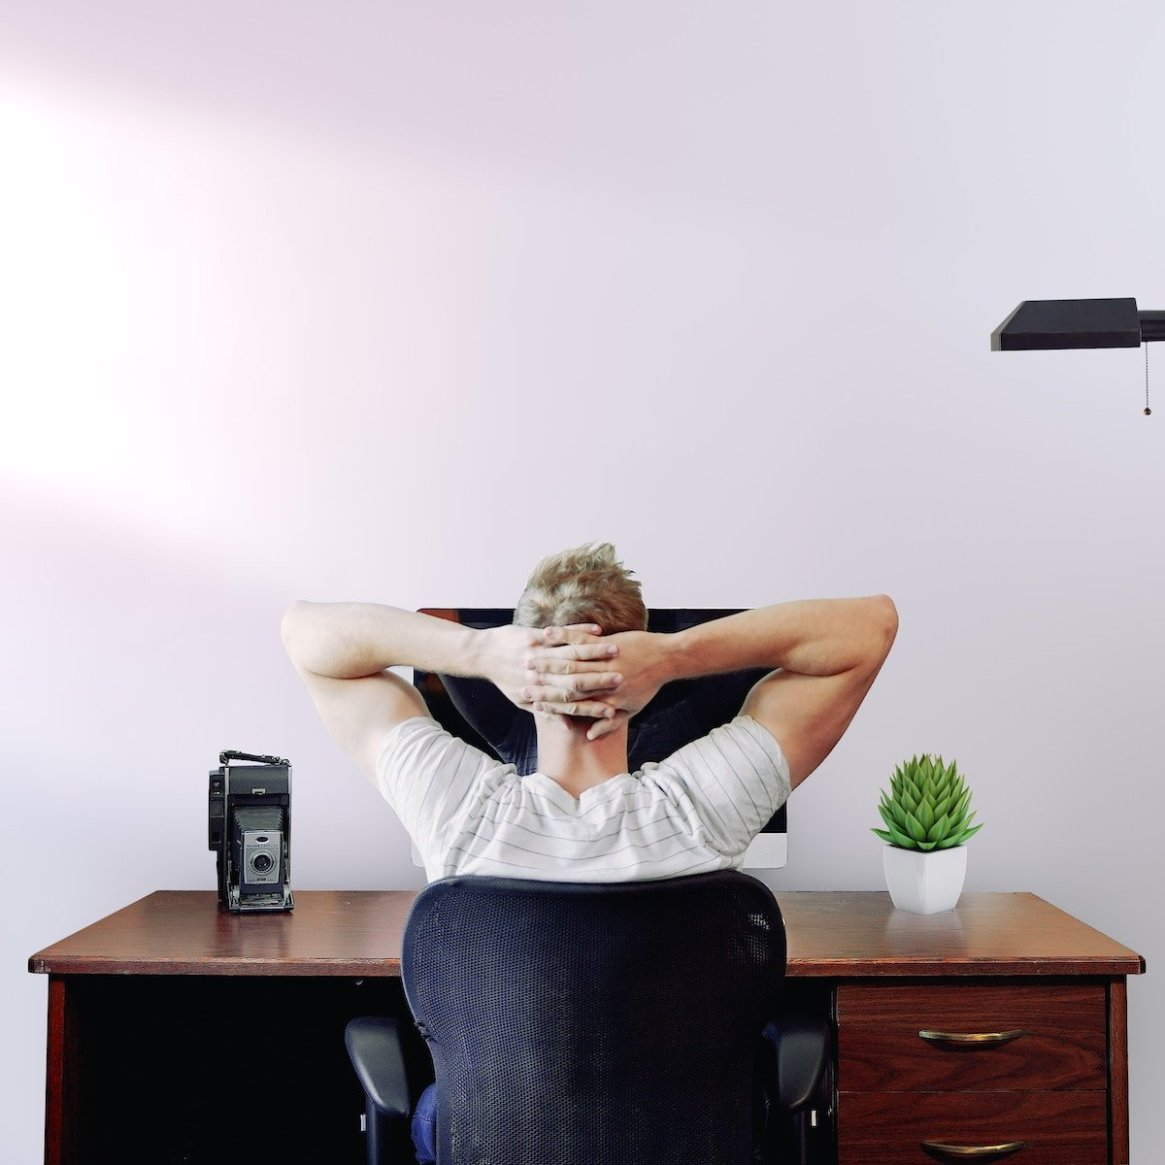 SUPPORT Square Male at desk relaxed 1200x1200pxl